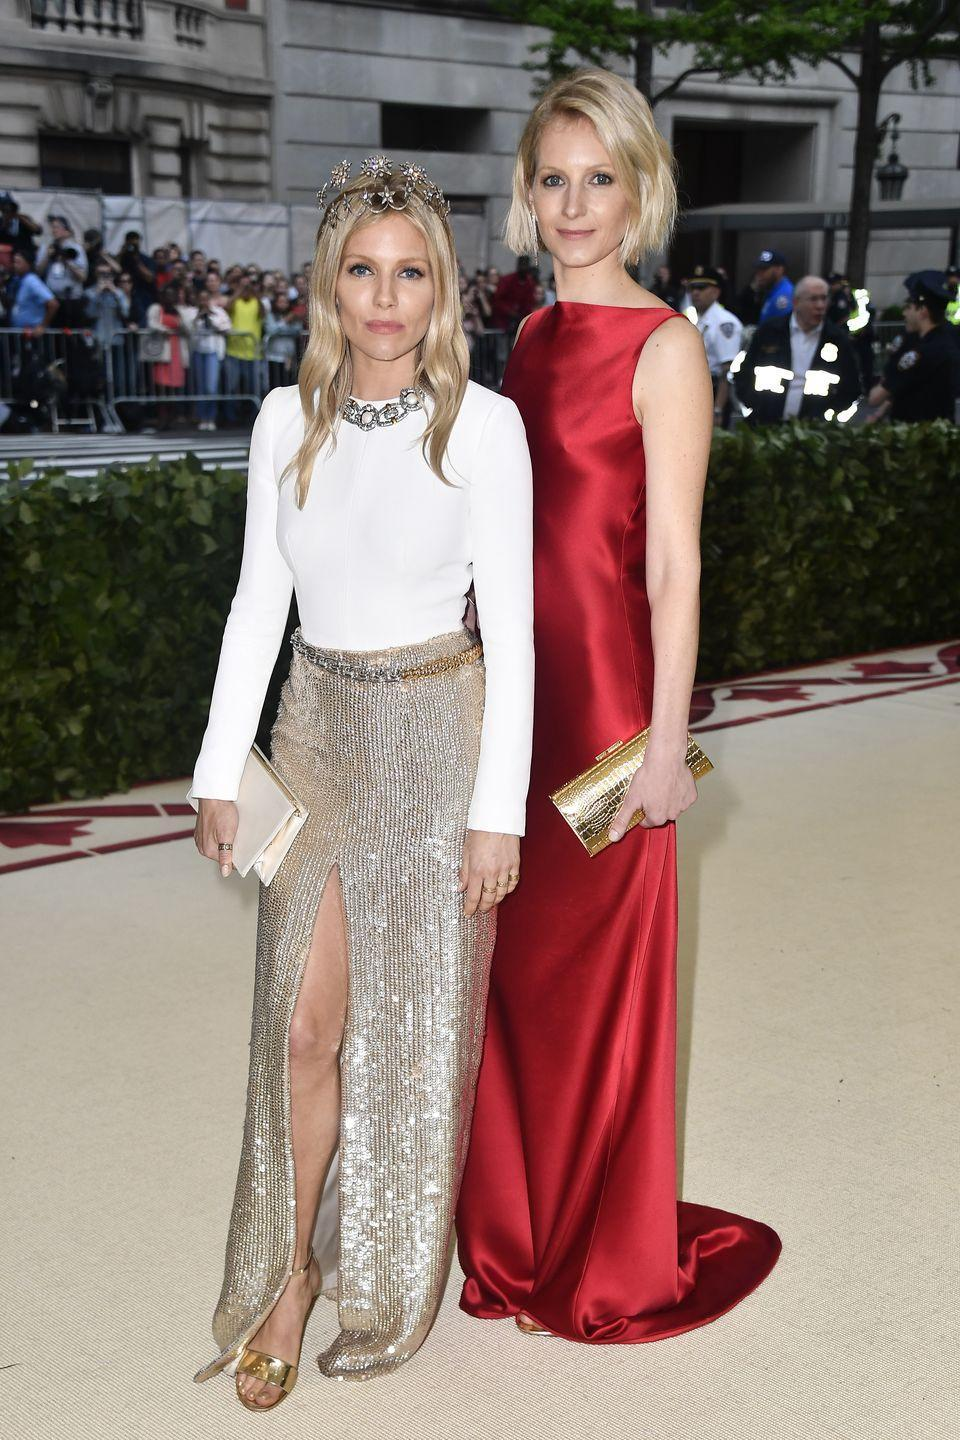 <p>While Sienna Miller is known for her red carpet style, her older sister Savannah is a fashion insider in her own right, having worked for some of Britain's top design houses. An eye for fashion isn't their only common trait: They both share a similar profile and blue eyes. </p>